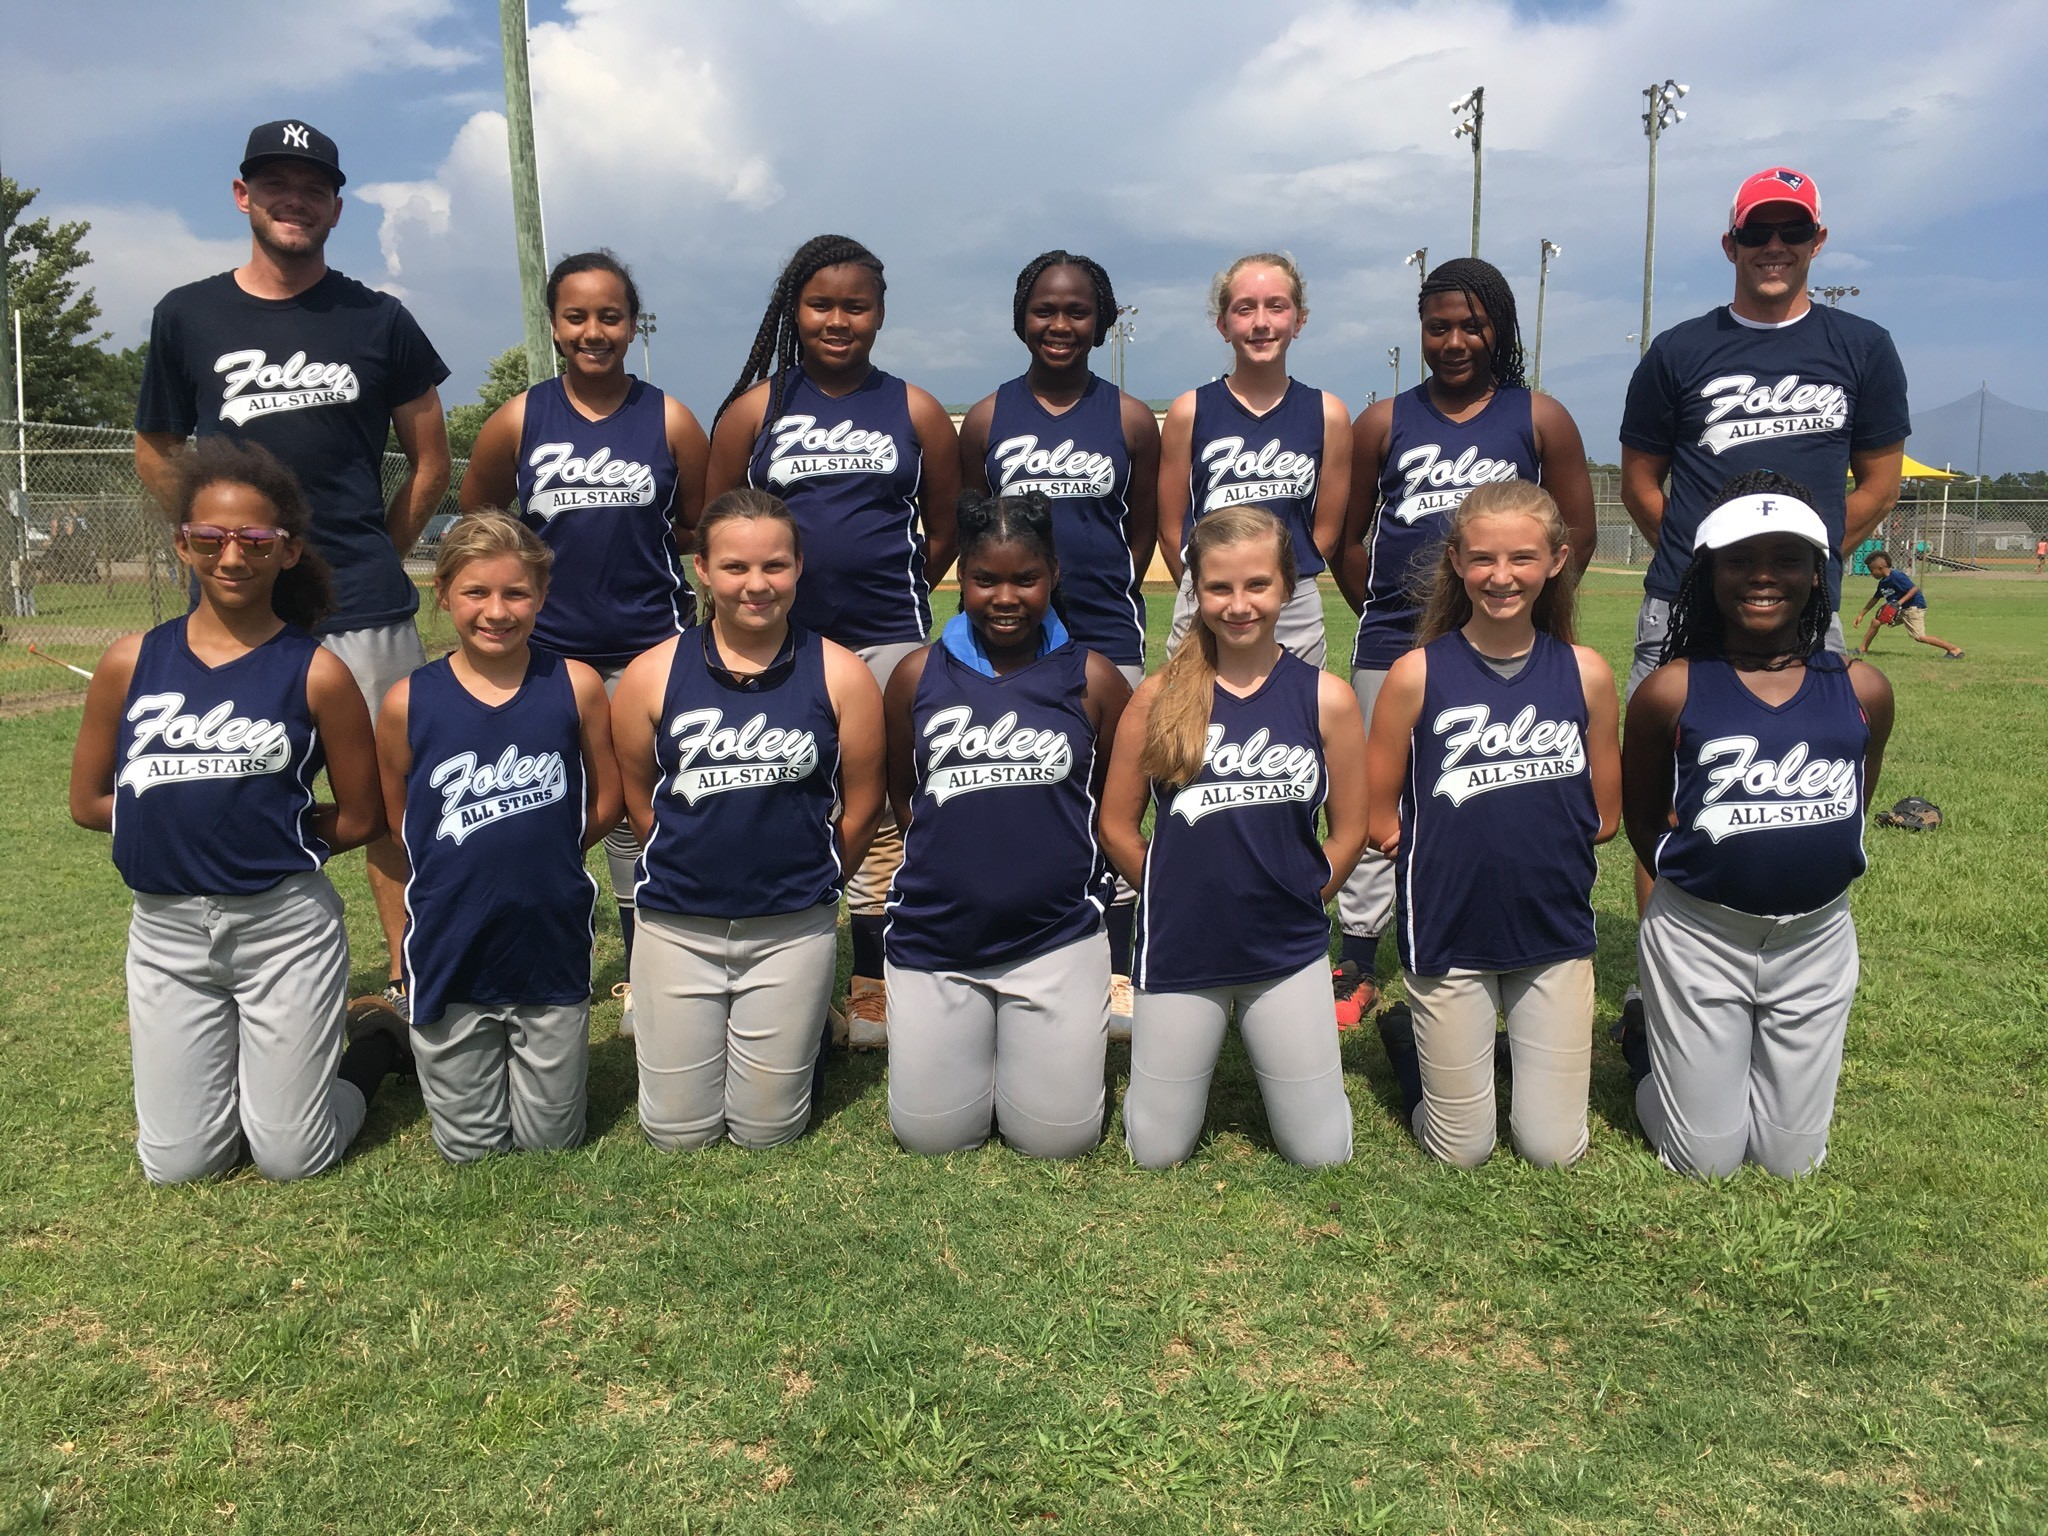 12U Age Group - Head Coach: Billy Zantop. Assistants: Shirley Sullivan and Rob Peddrick. Players Standing Left to Right: Jaelyn Shoots, Christina Bragg, Tynashia Gray, Heidi Tucker, and Destiny Holmes.